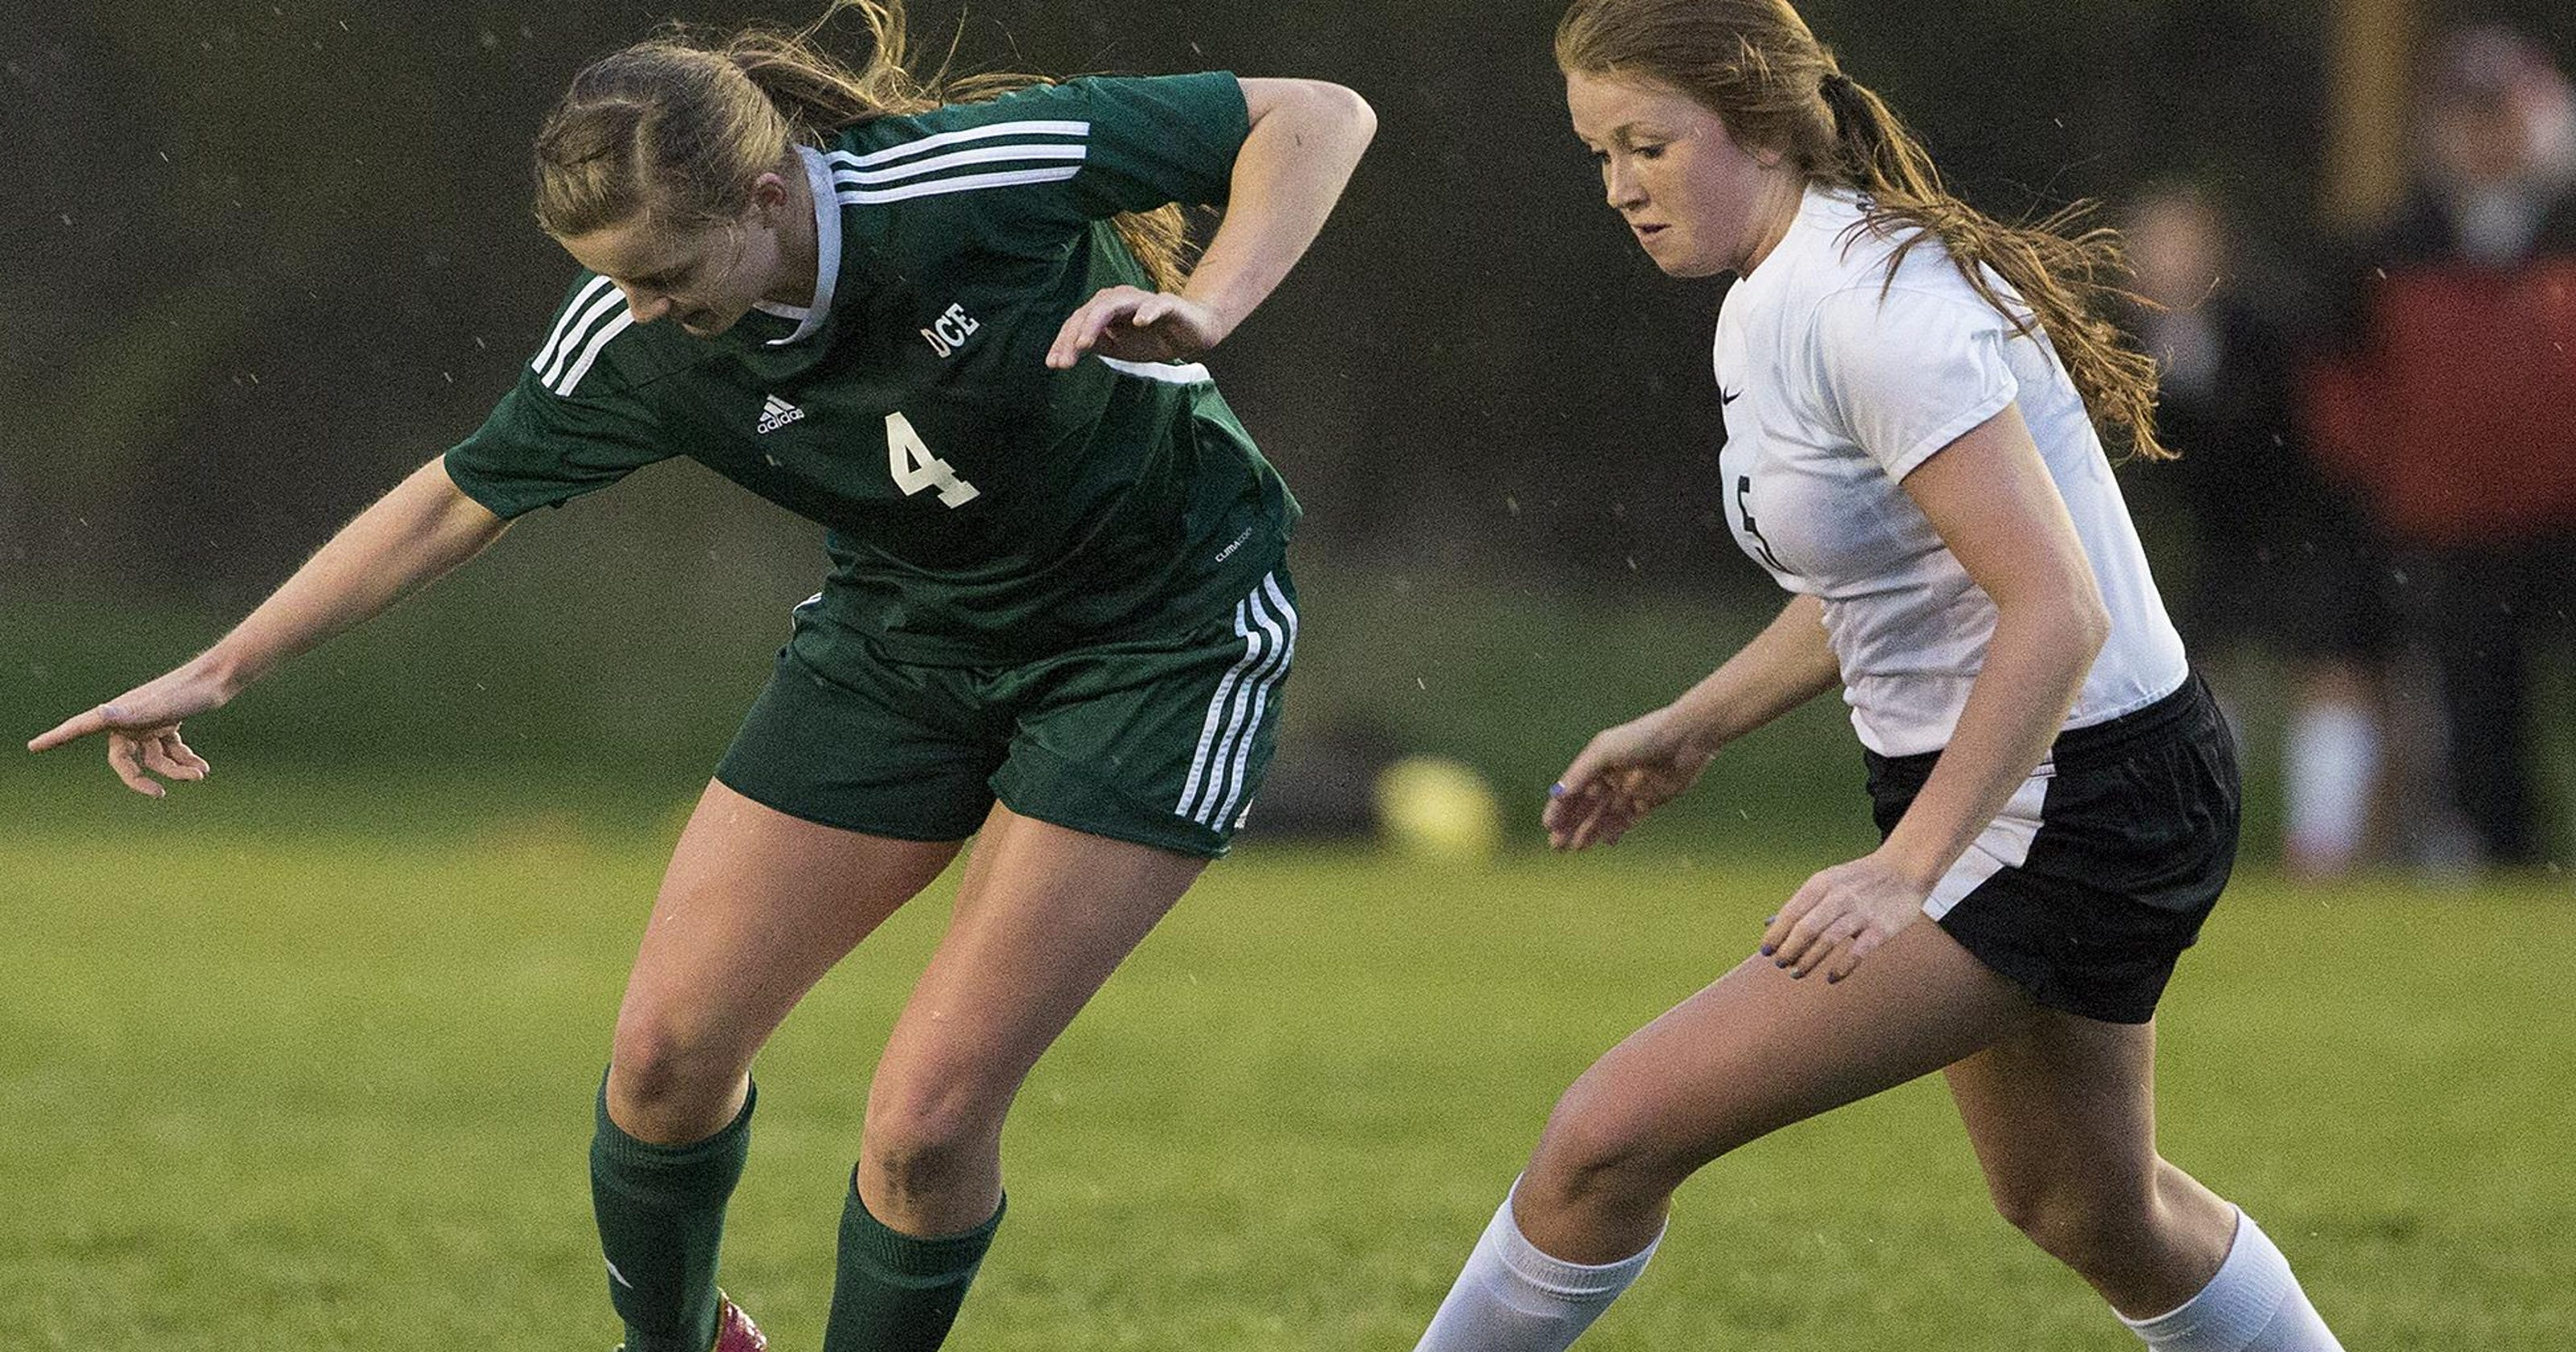 447308ee20a8 D.C. Everest girls soccer rallies past SPASH